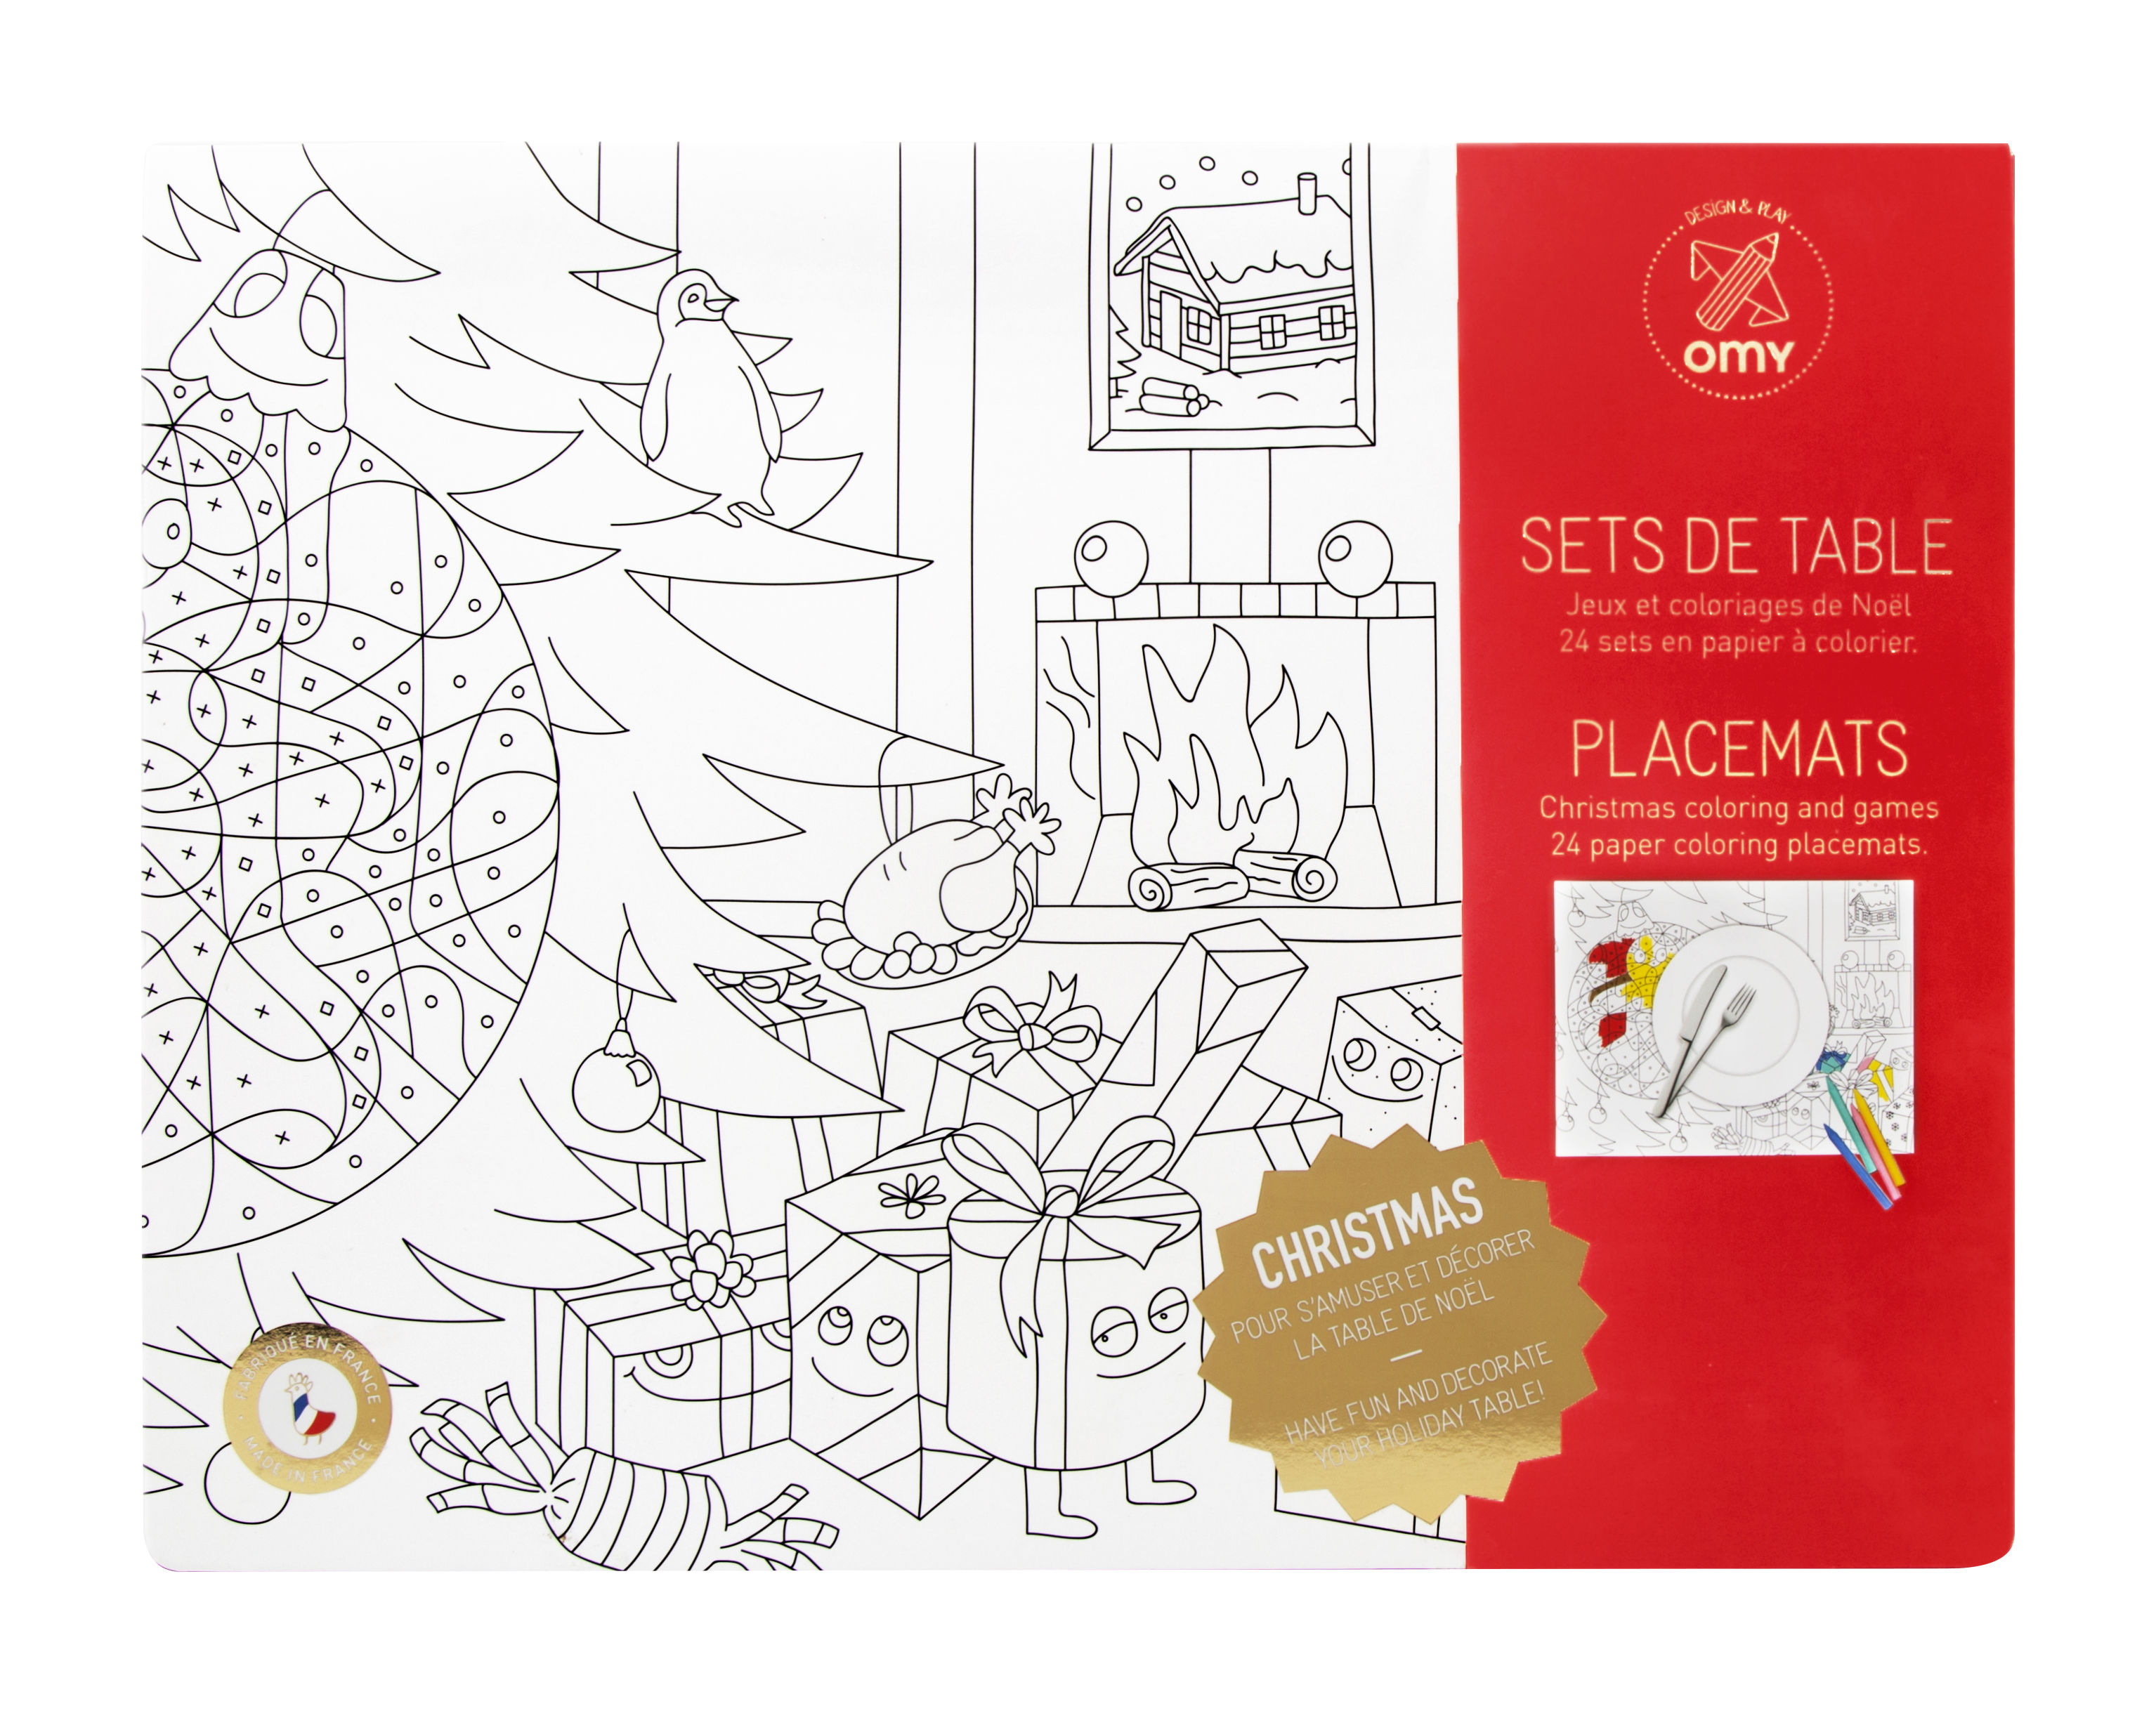 Decoration - Children's Home Accessories - Christmas Colouring table mat - Set of 24 by OMY Design & Play - Noël - Papier recyclé